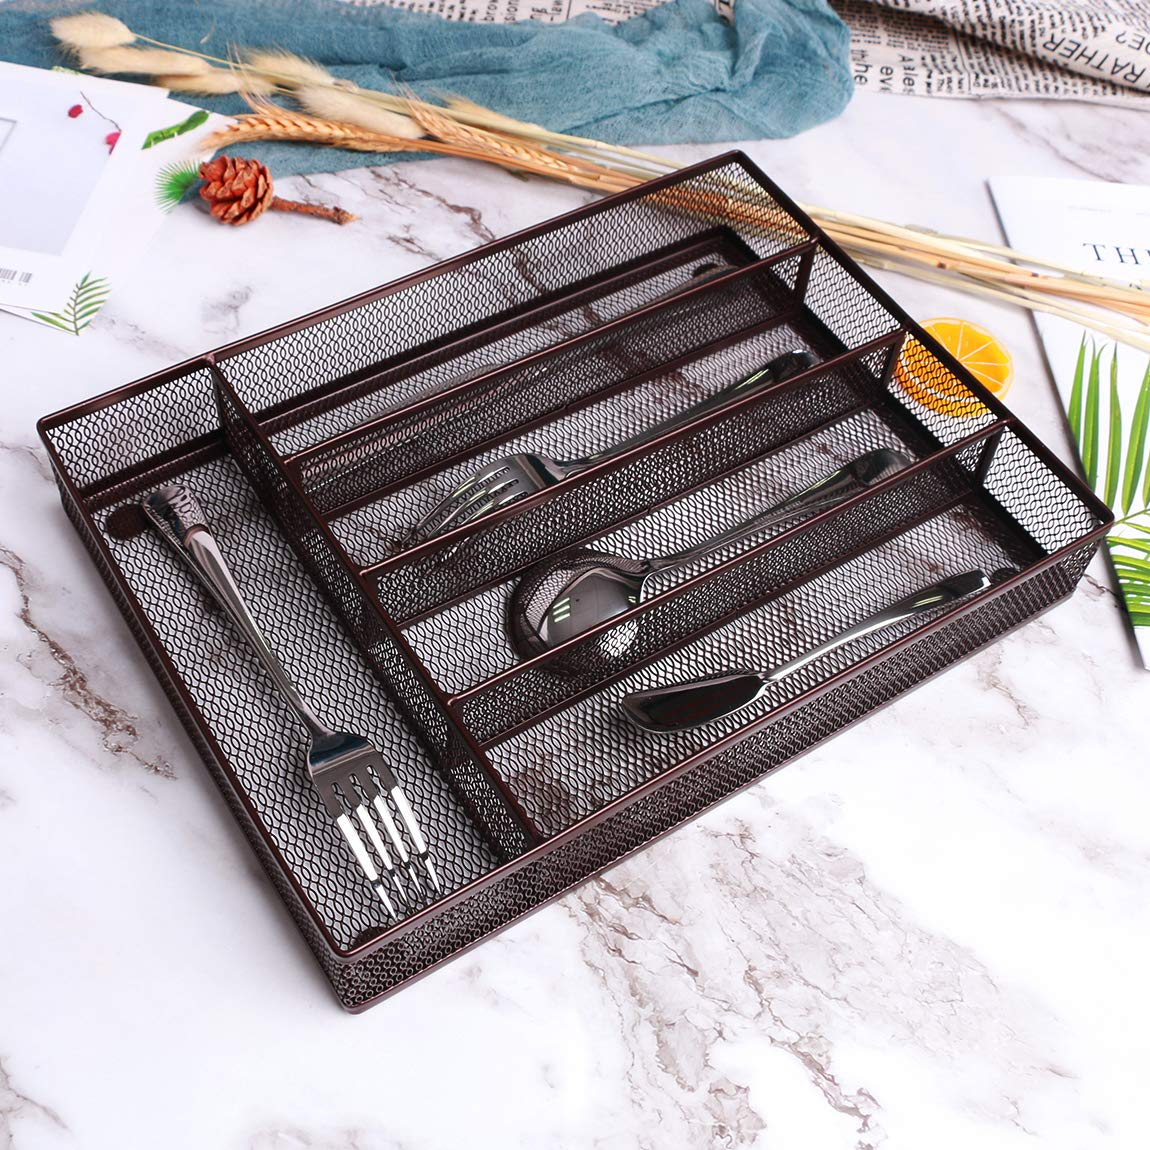 """SZAT PRO Mesh Silverware Tray Cutlery Drawer Organizer Kitchen Storage Flatware Set Utensil Knives Spoons Forks (Brown, 12.5"""" x 9.4"""" x 2"""", 5 Compartments) by SZAT PRO (Image #5)"""